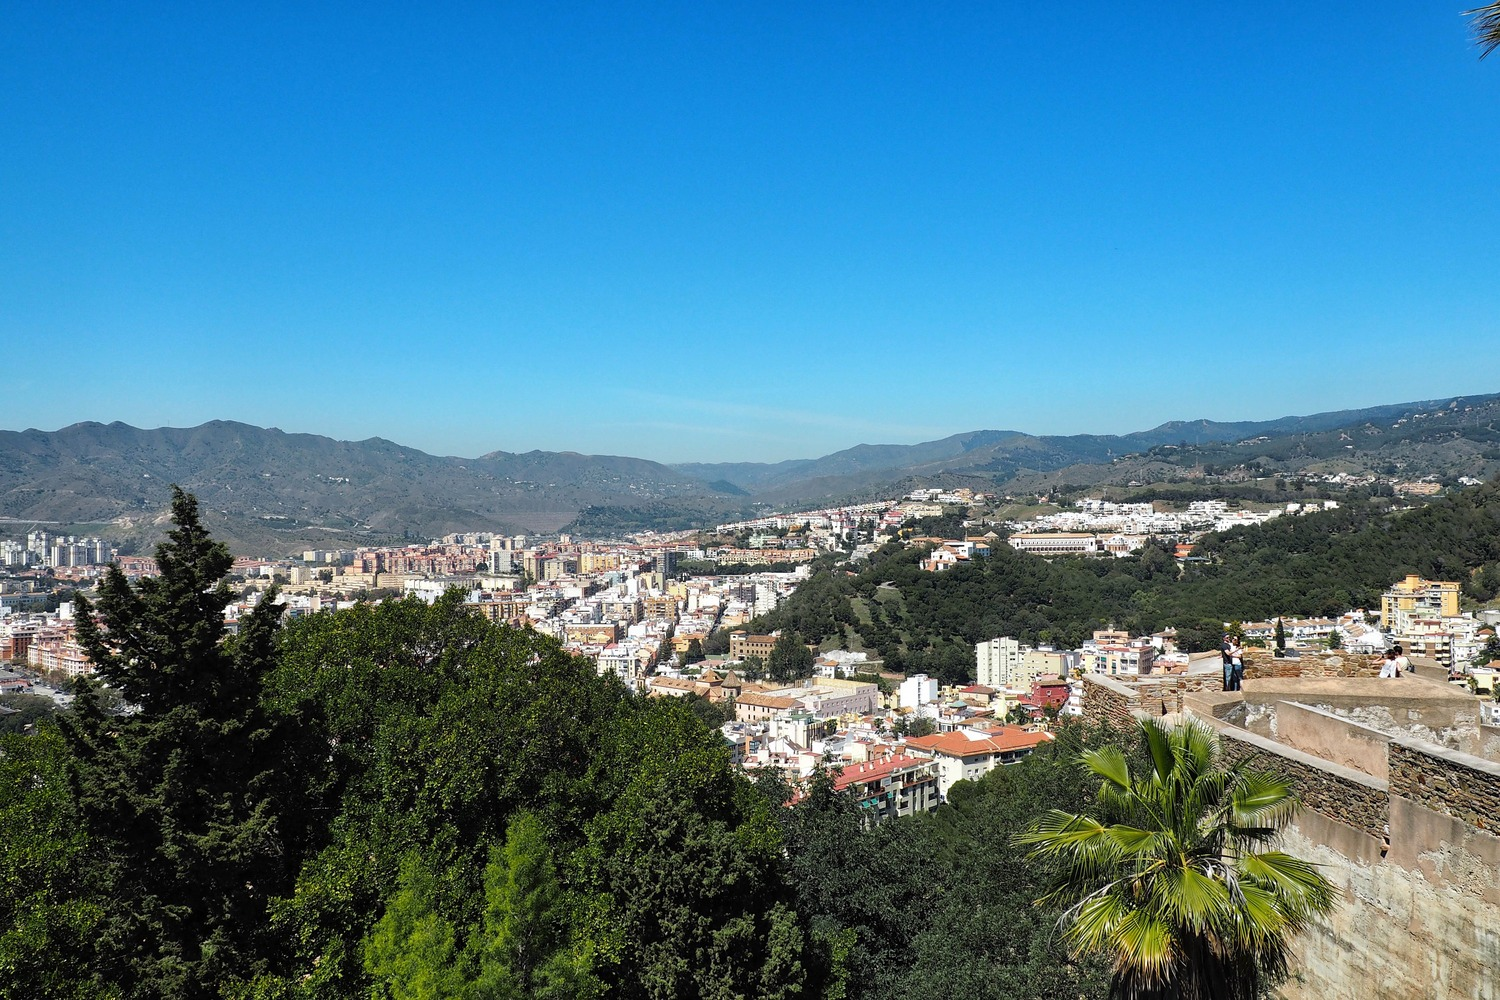 Malaga Spain Travel Blog Post